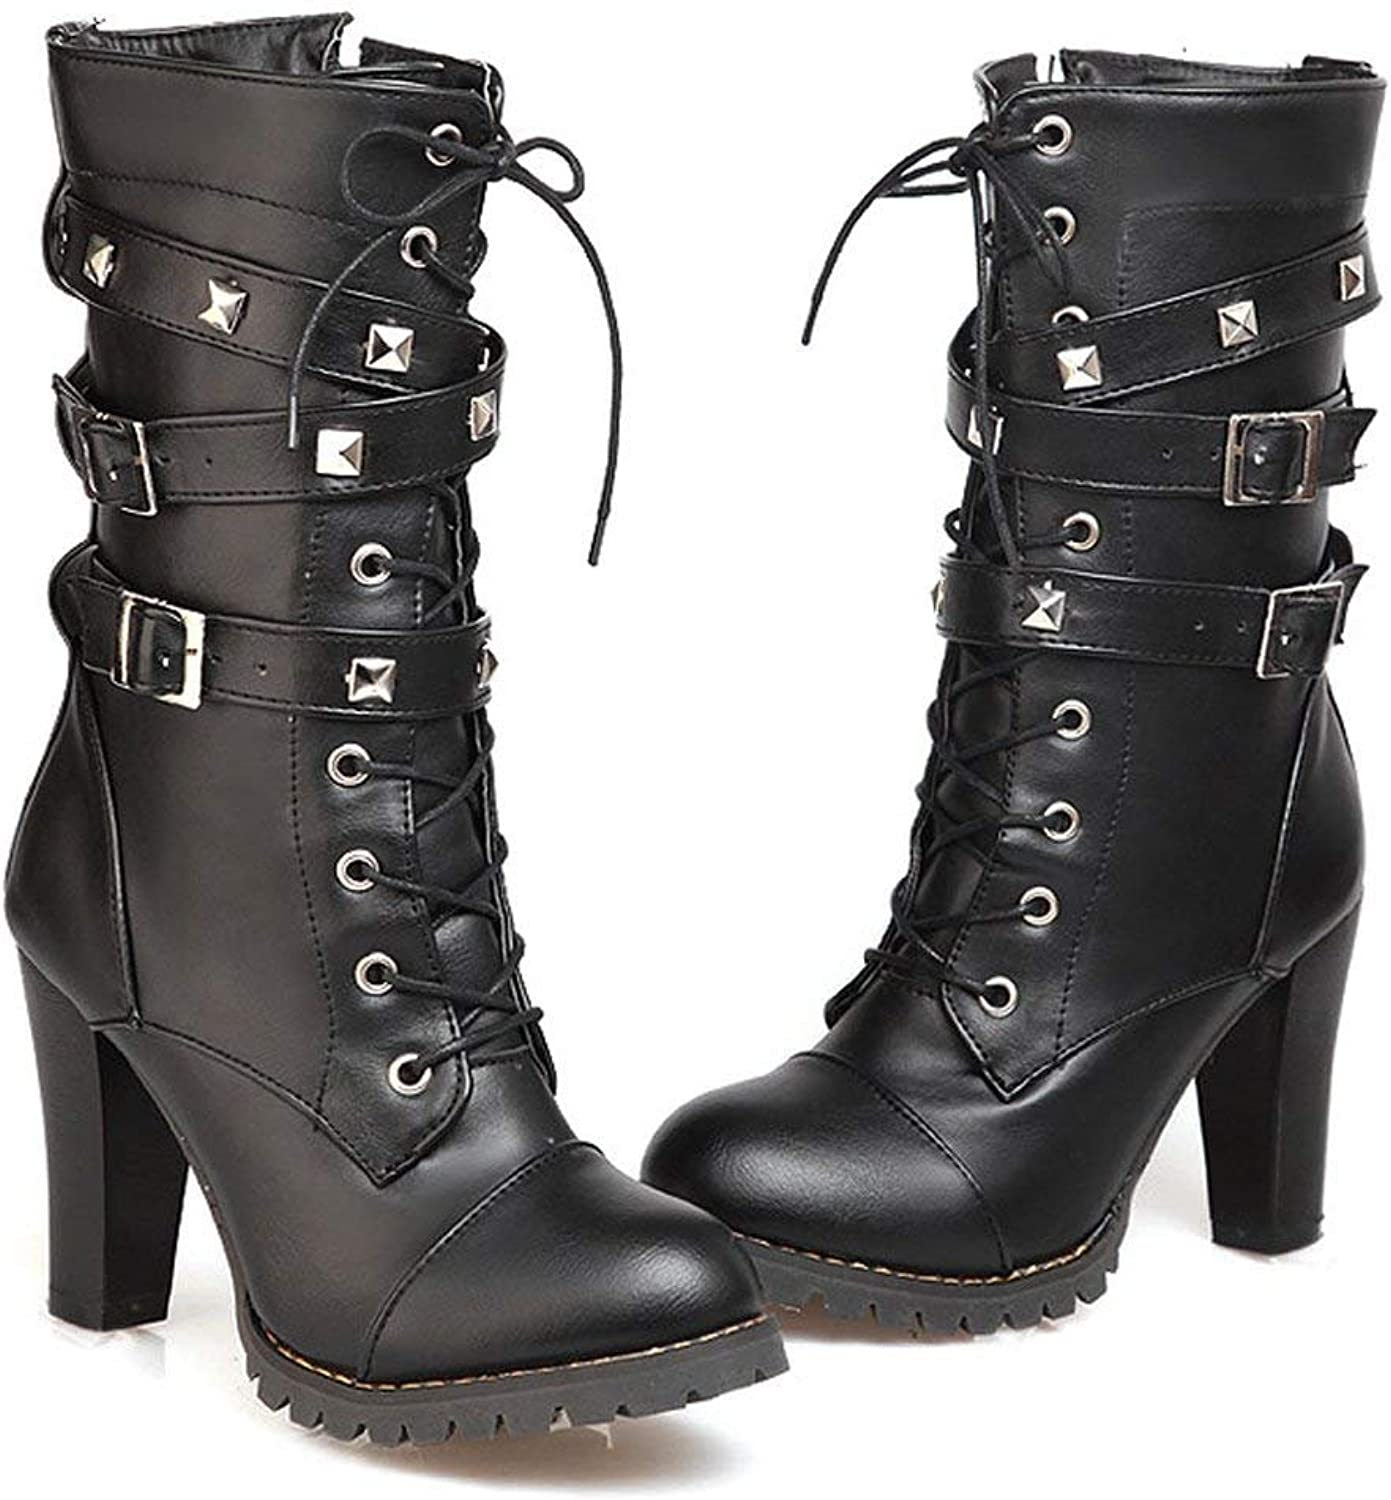 Women Motorcycle High Heels Punk Buckle Rivet Strap Combat Military Mid Calf Boots(0 0)